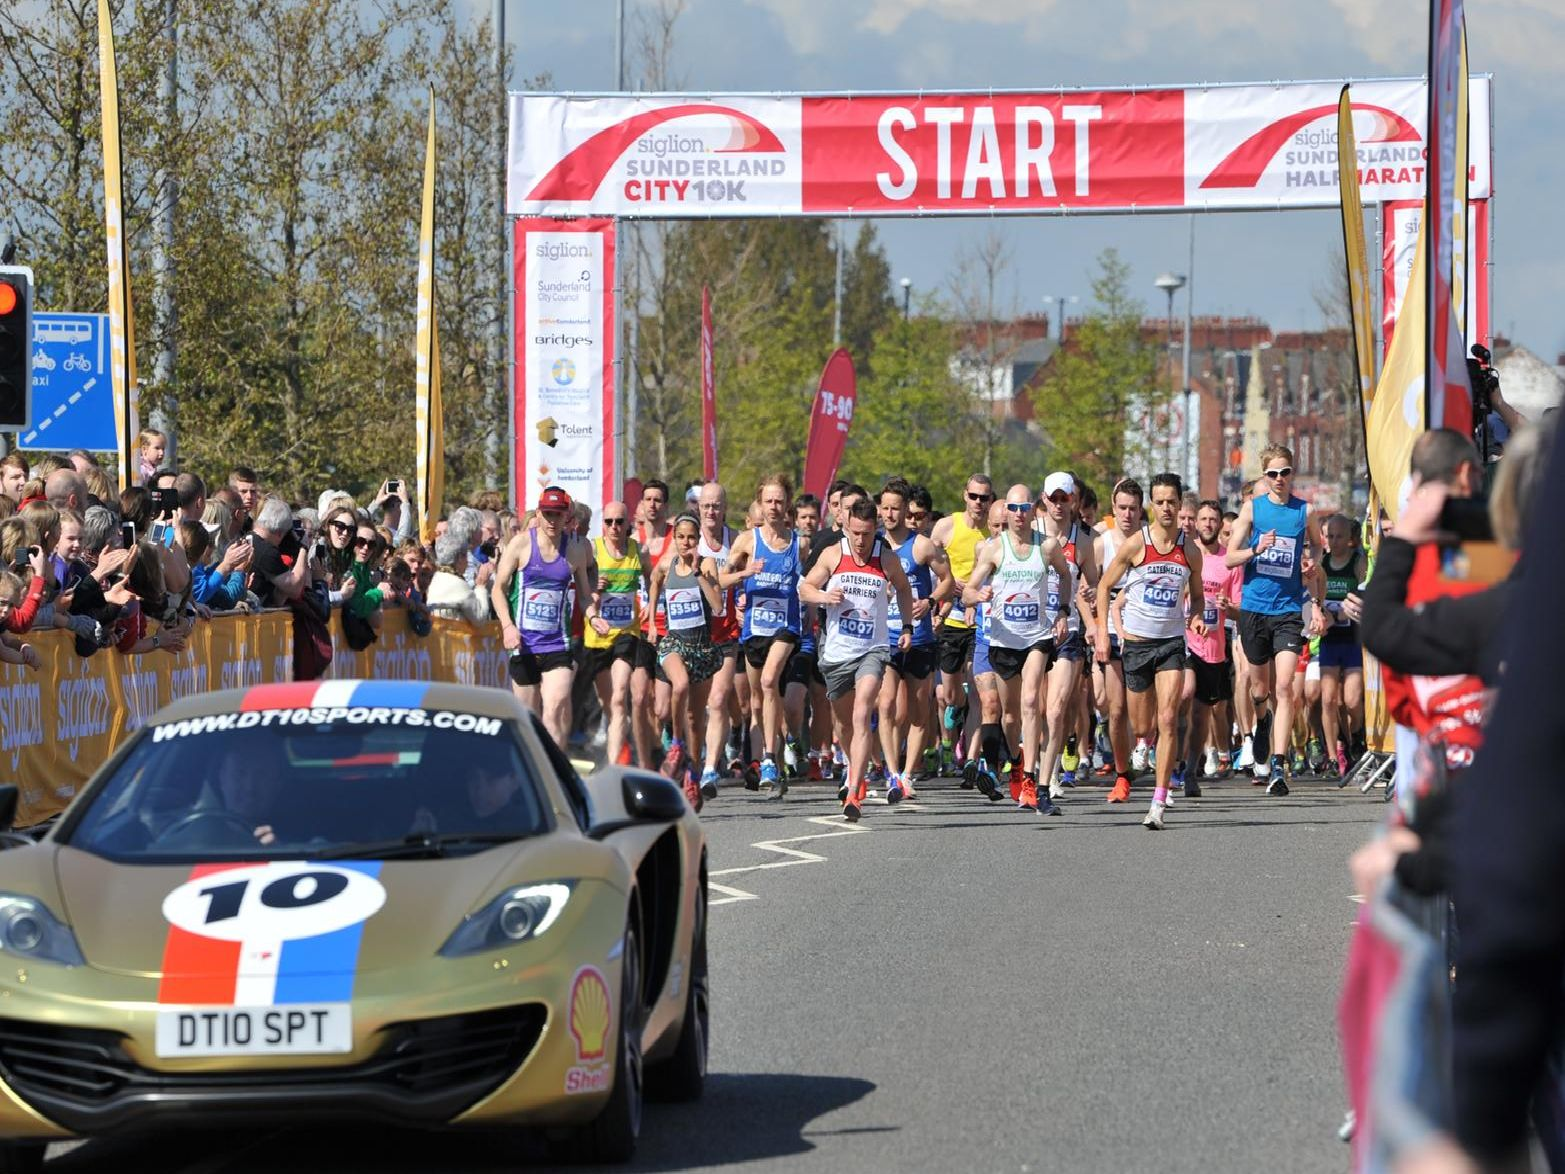 The half-marathon was part of the Run Sunderland Festival, sponsored by Siglion.